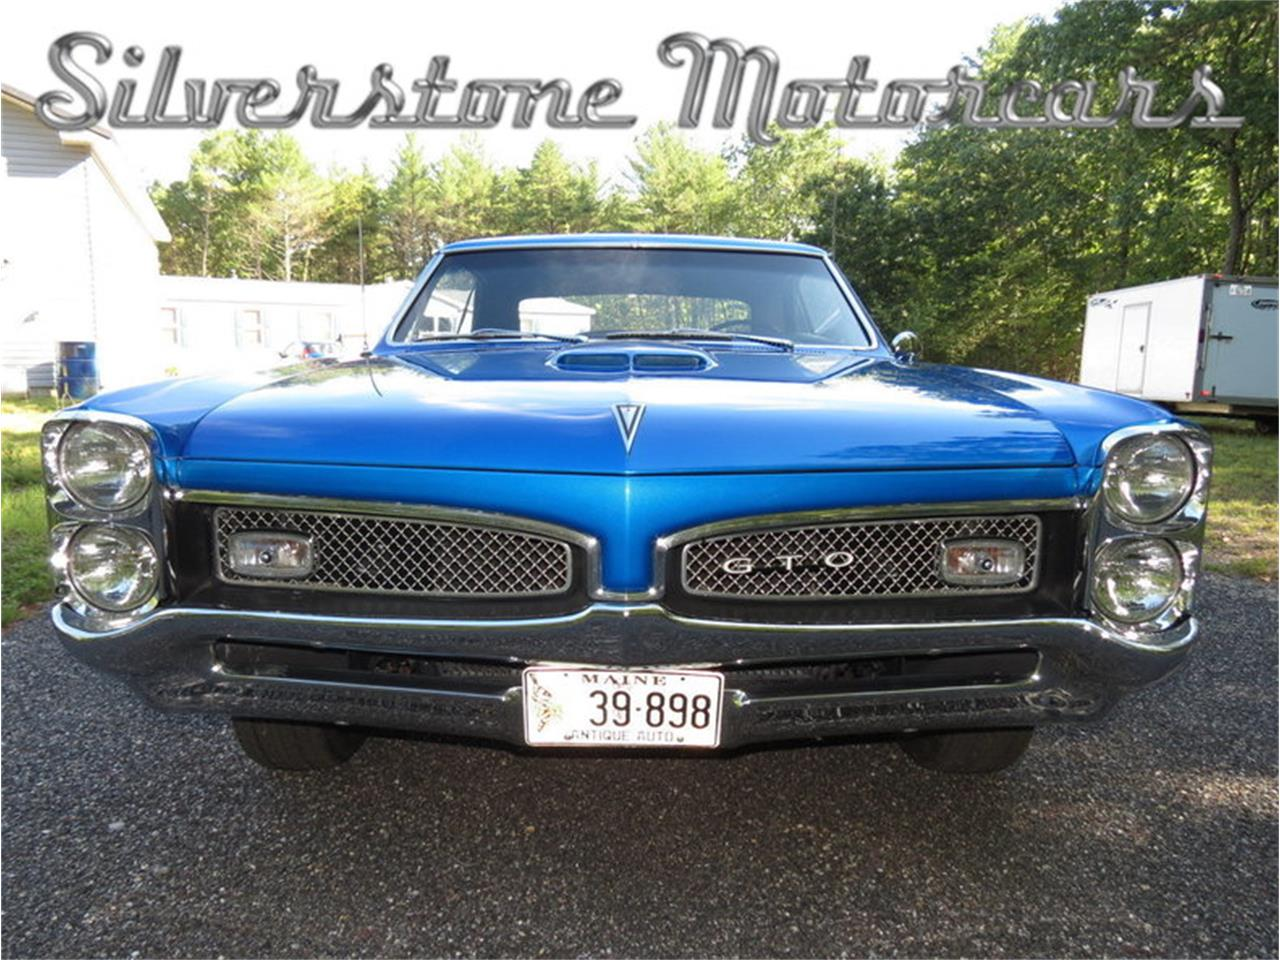 Large Picture of 1967 Pontiac GTO located in Massachusetts - $59,900.00 Offered by Silverstone Motorcars - JG3G